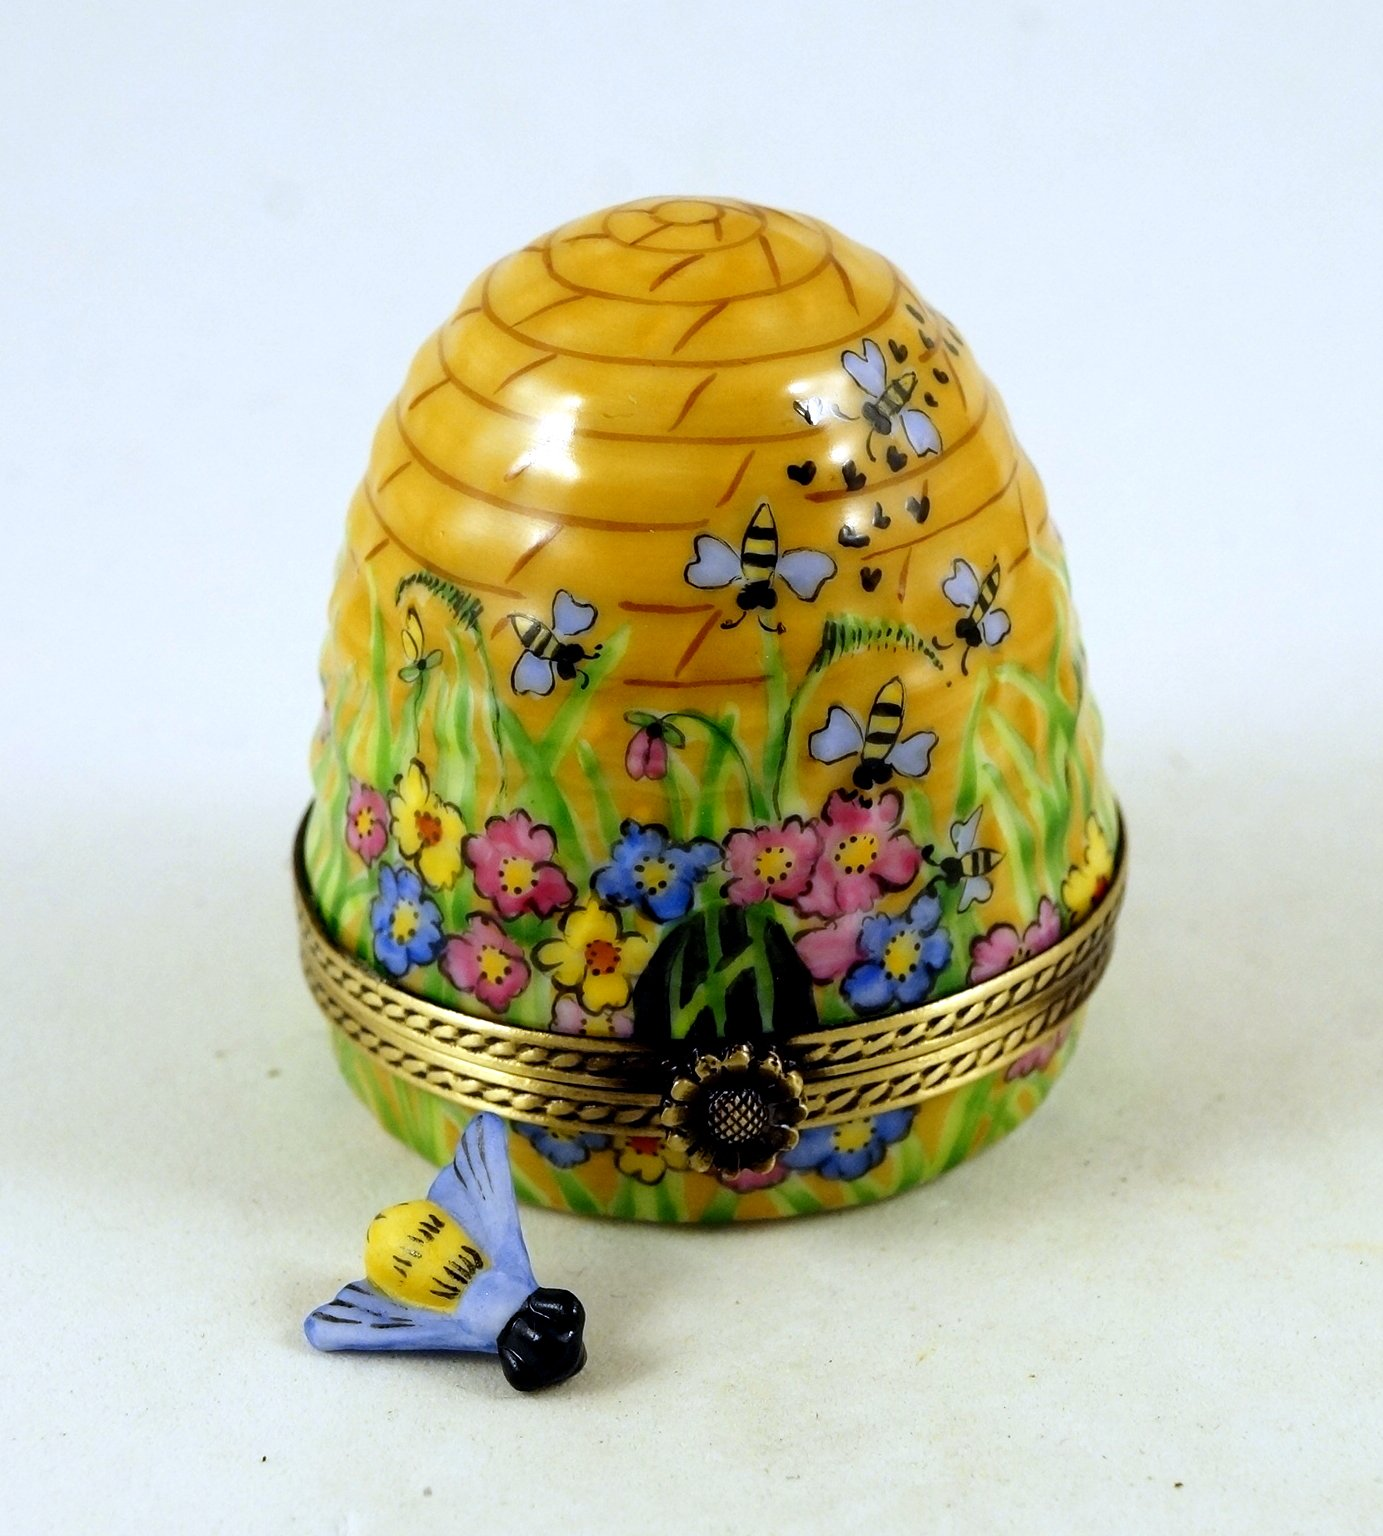 Authentic French Porcelain Hand Painted Limoges Trinket Box Amazing Colorful Beehive with Miniature Porcelain Removable Bee by Authentic Limoges Boxes (Image #3)